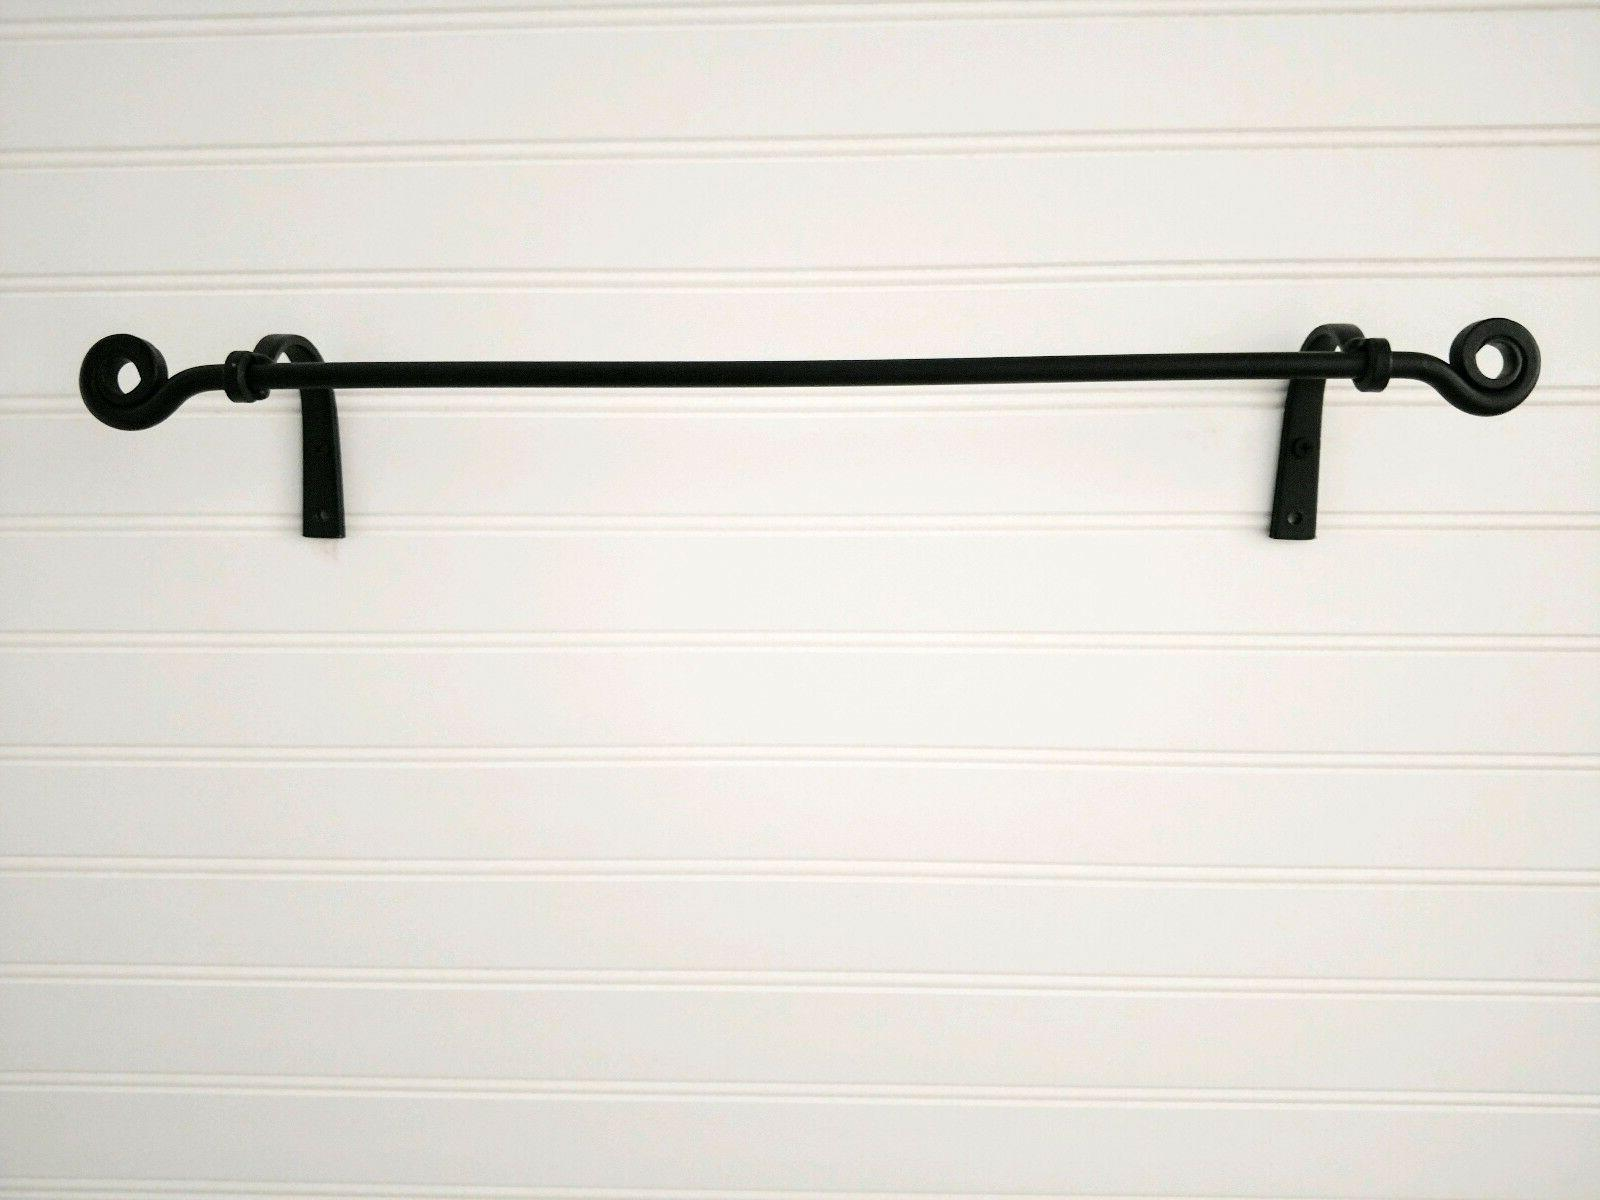 Amish forged black wrought iron small towel holder bar - str